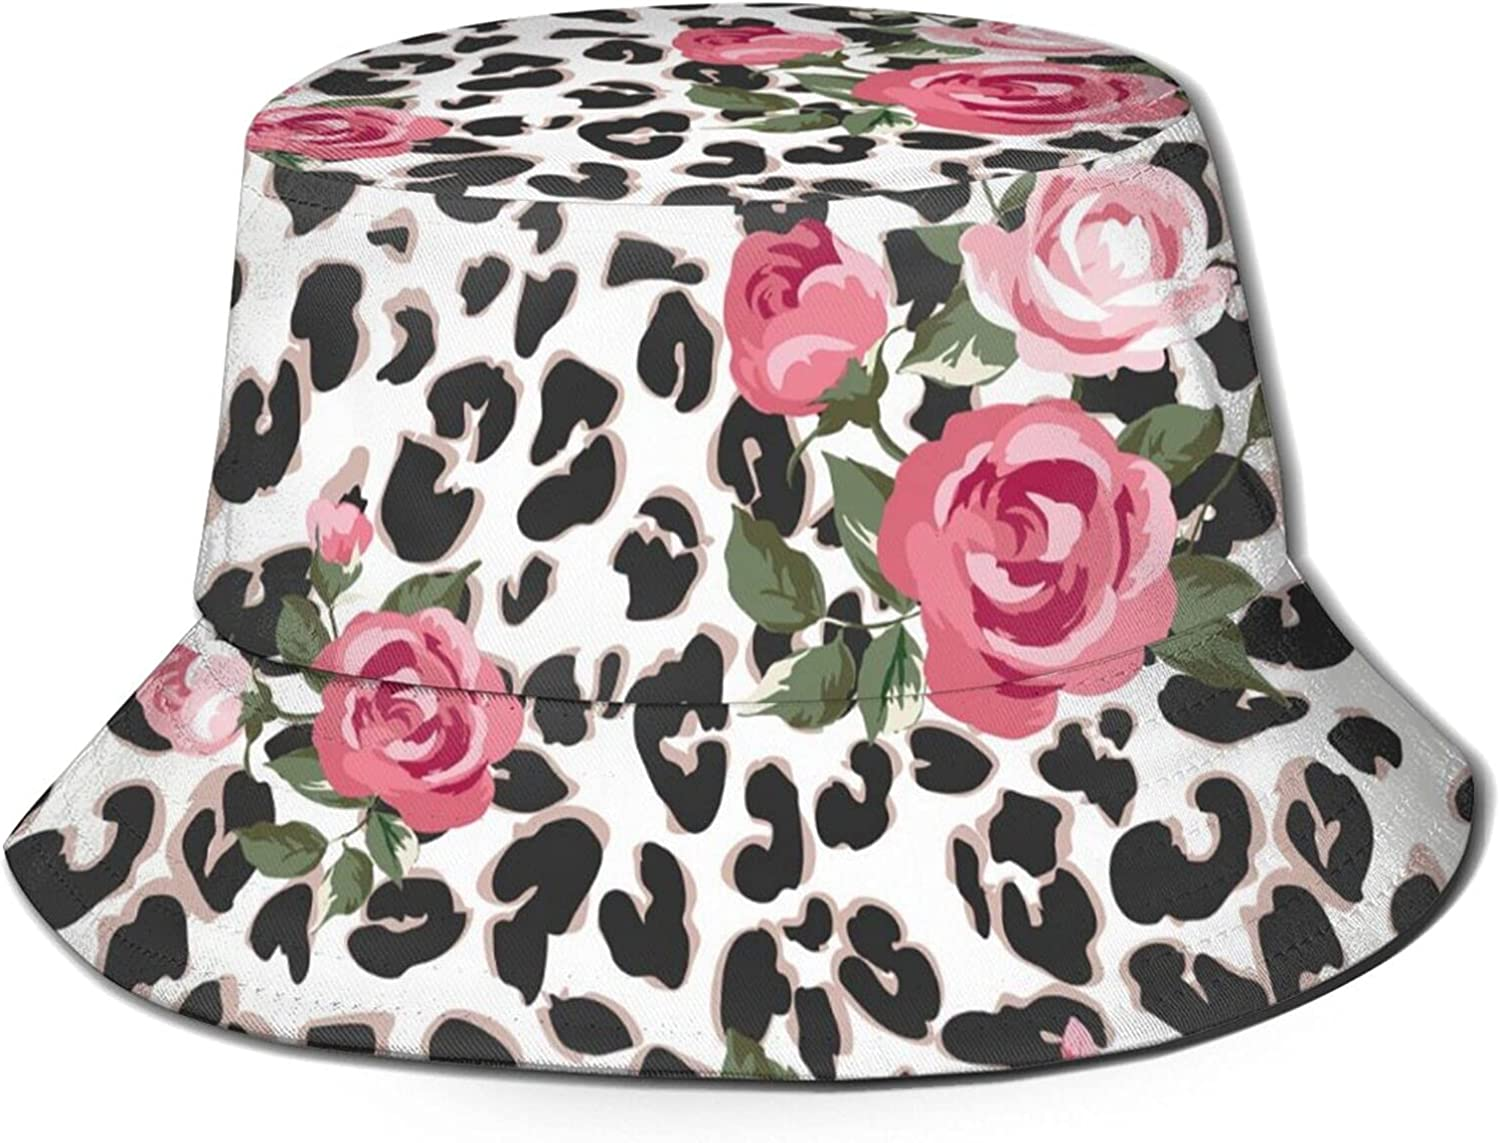 Polyester Sun Bucket Hat for Teens Women Girls Men Fi Max 62% OFF Beauty products Brim Wide